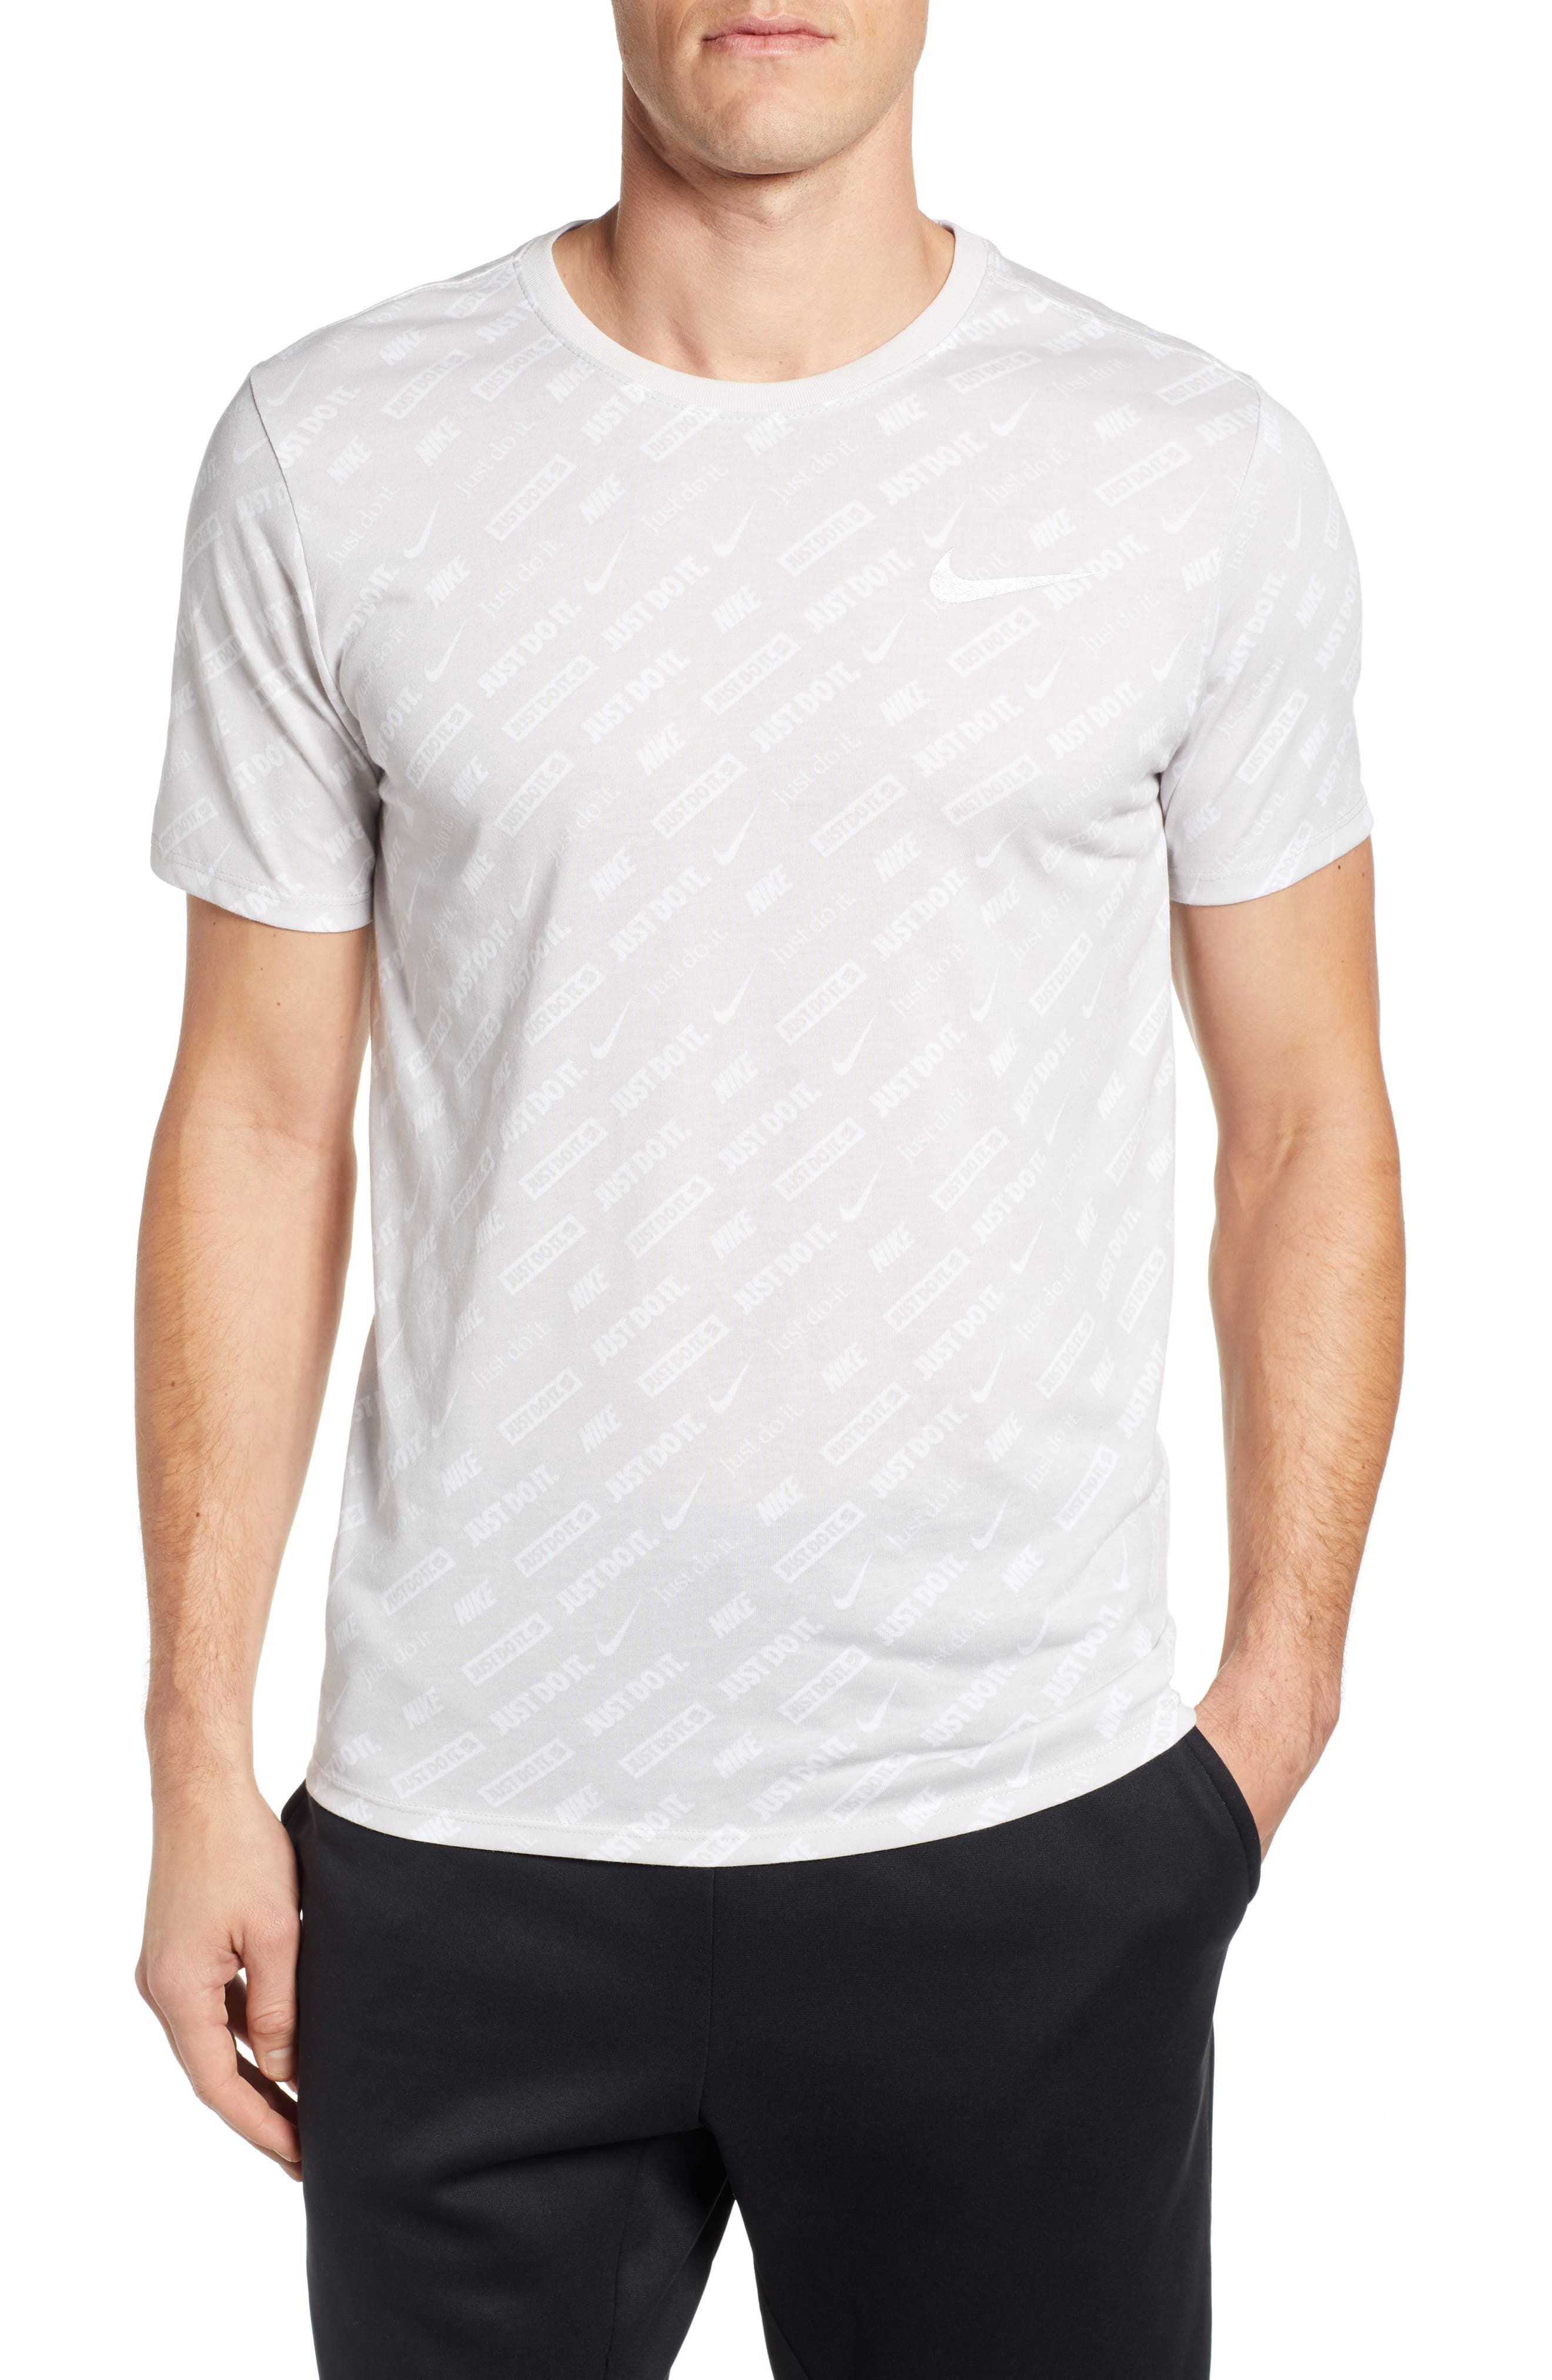 2126be111 Nike Tall Tee Shirts – EDGE Engineering and Consulting Limited